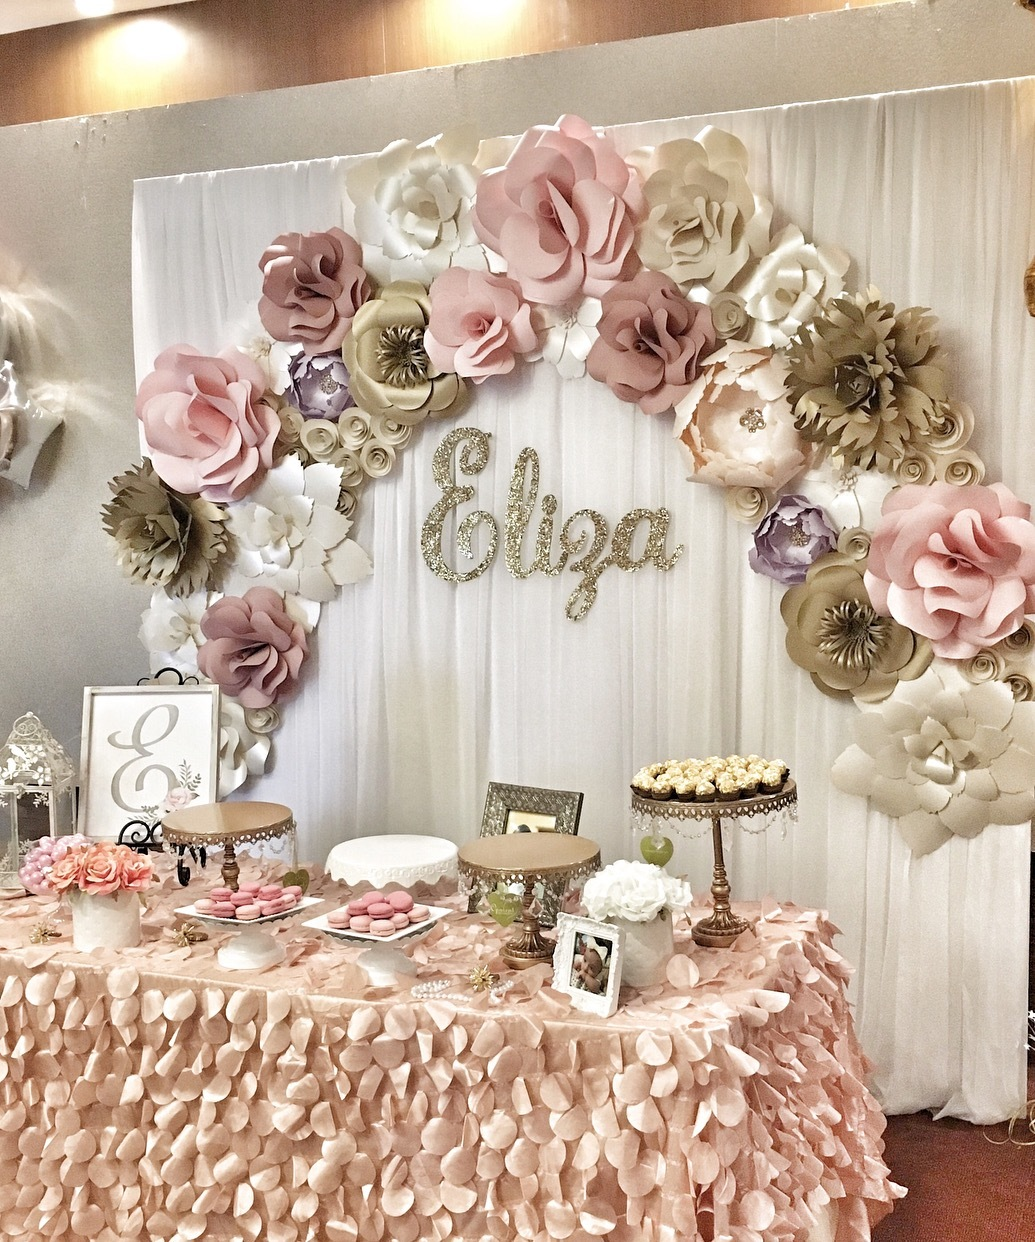 paper flowers, paper flower backdrop, wedding decor, retirement party, corporate events, women's event, first birthday decor, christening, quinceaneras, home decor, paper flowers for sale, nursery decor, houston paper flowers, houston backdrops, girly decor, garden party decor, sugar land, tx. houston, tx., texas paper flowers, glo paper flowers, flower wall, engagement party, bridal shower, all white flower wall, all white paper flower wall, paper flower wall, houston paper flower wall rental, sugar land, austin, rosenberg, victoria, galveston, wharton, houston texas, wedding decor, wedding, paper flower artistry